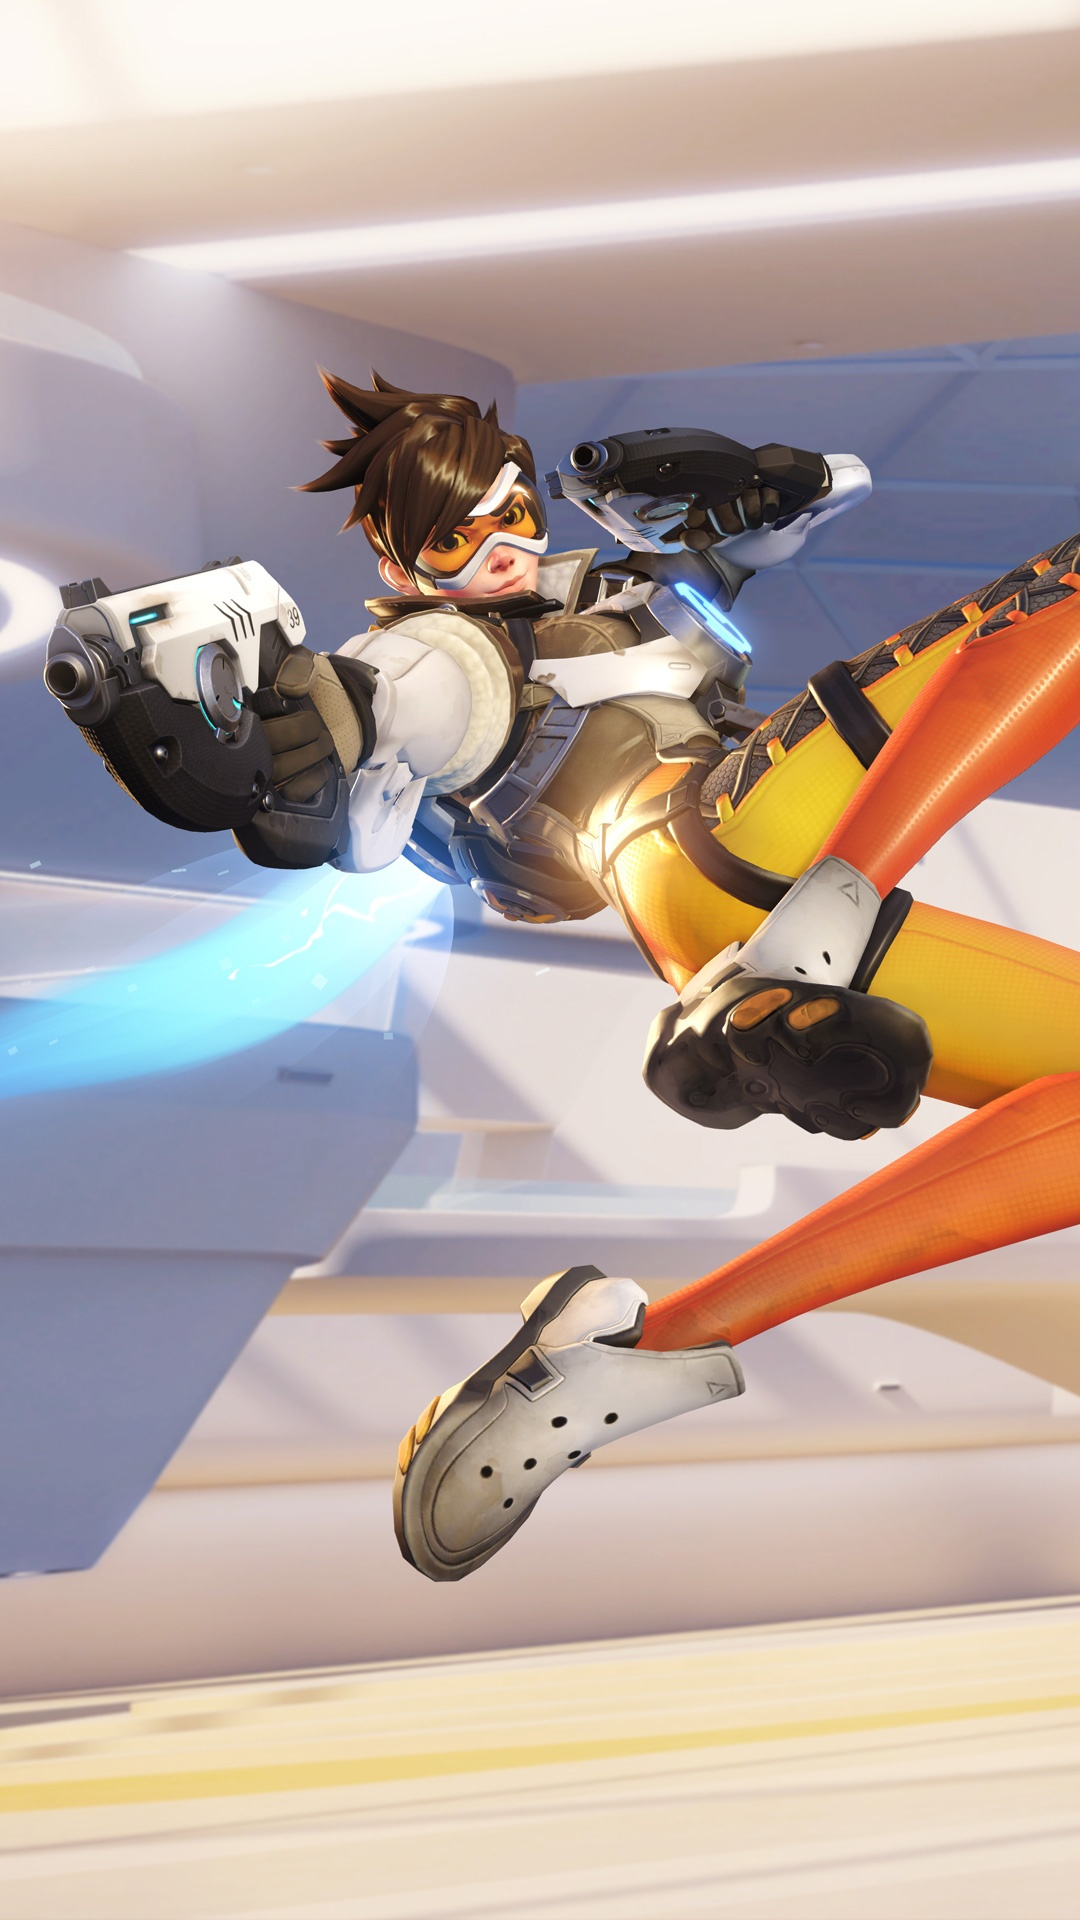 Overwatch Tracer 4k Wallpapers In Jpg Format For Free Download